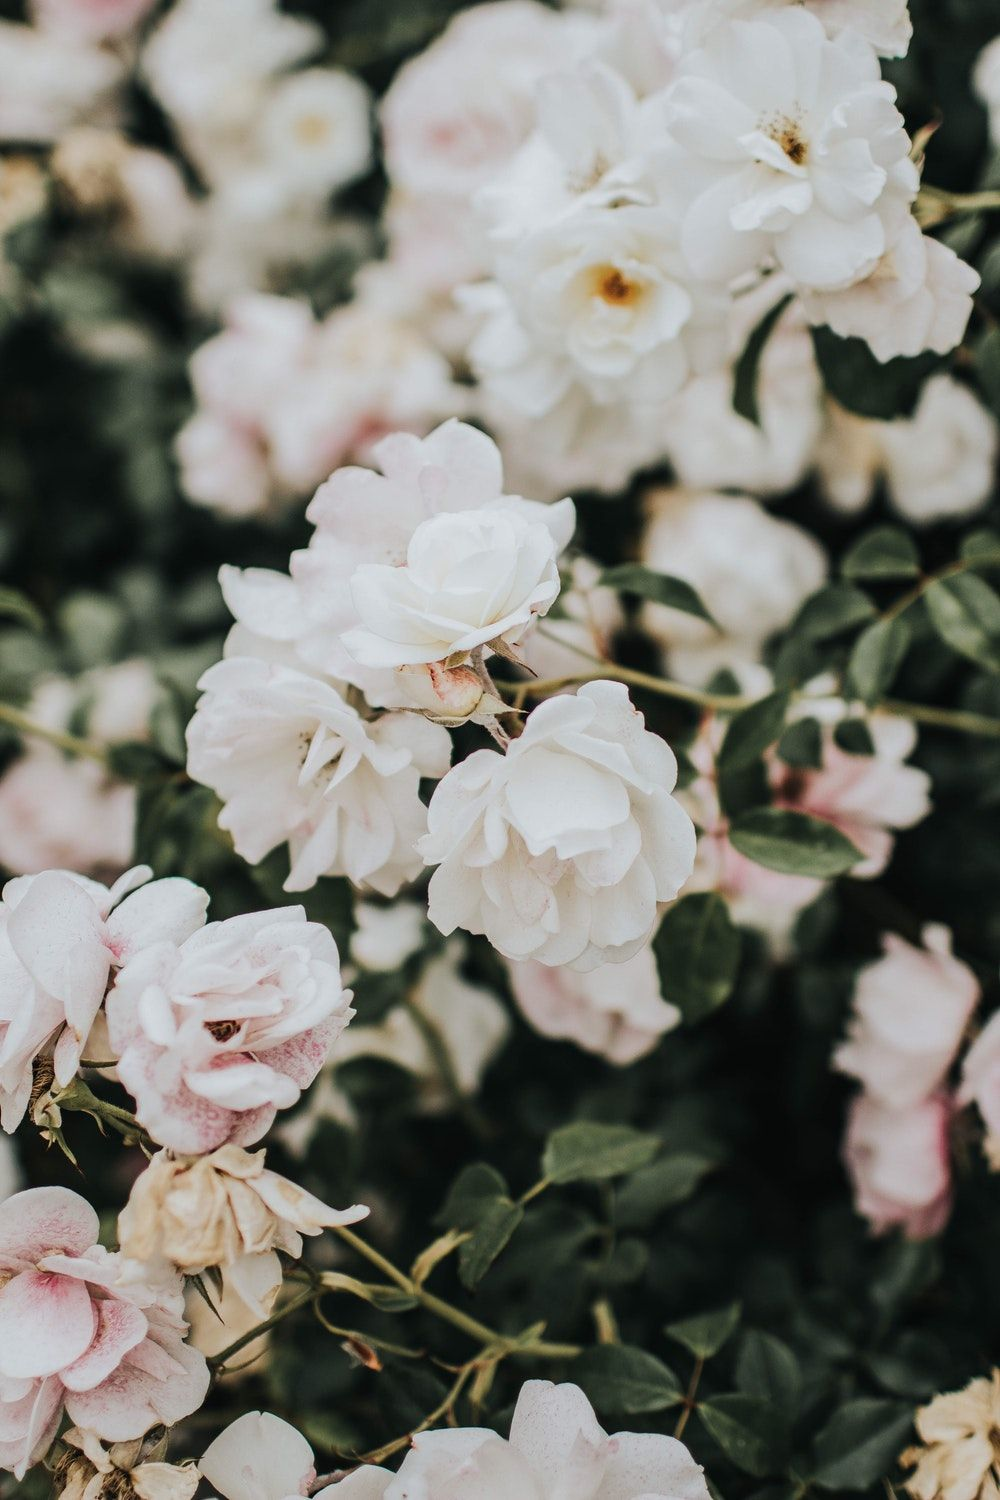 1000x1500 100+ White Flower Pictures   Download Free Images on Unsplash